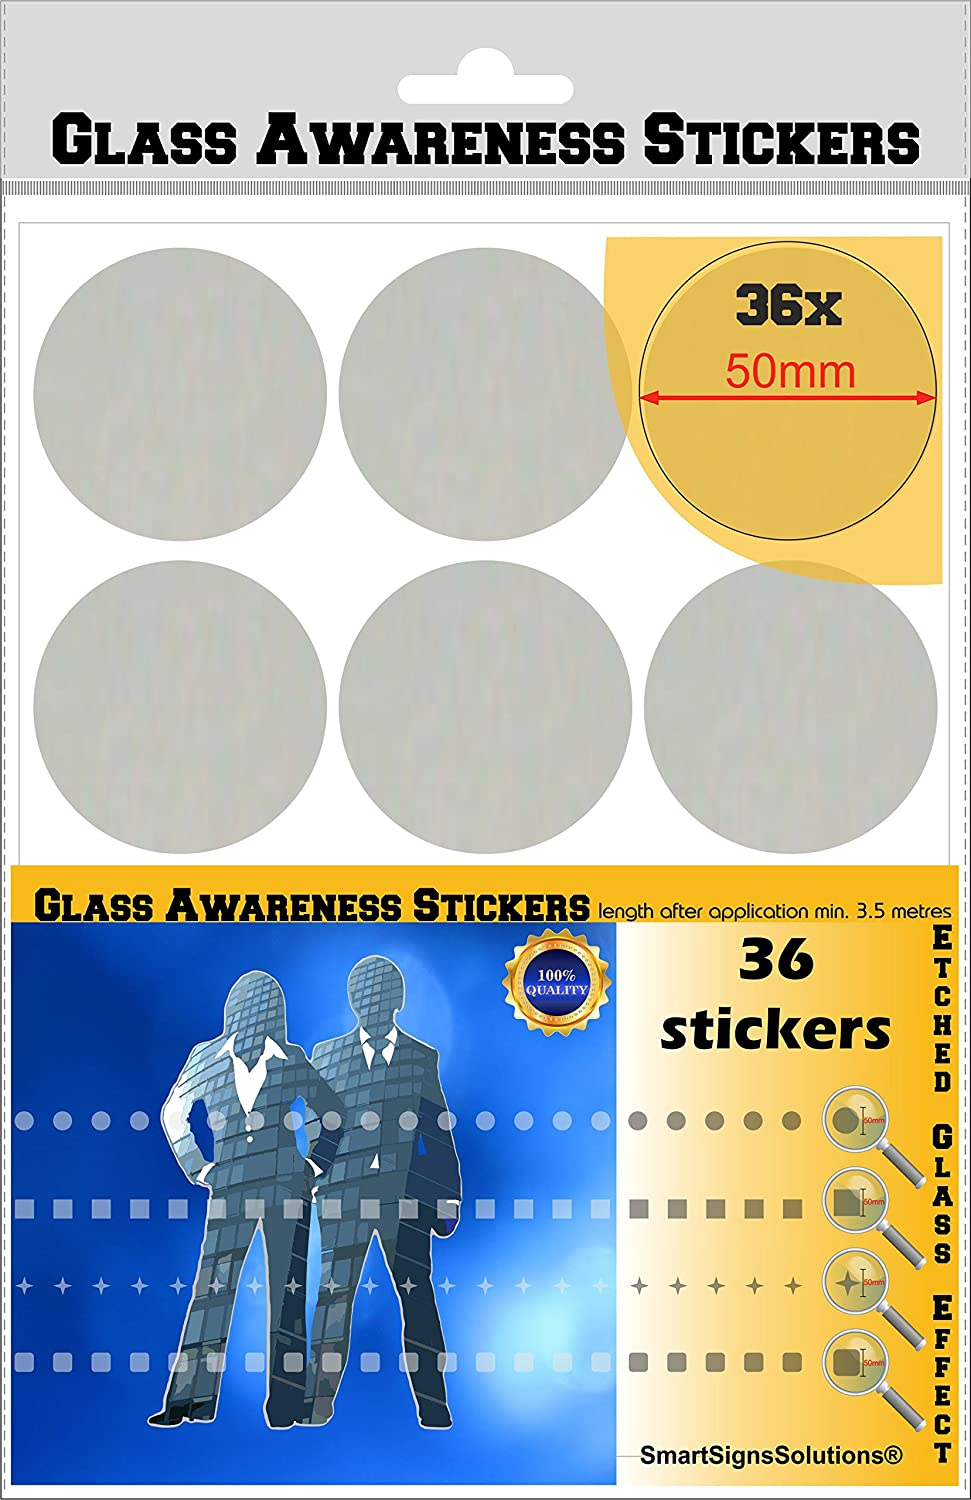 Glass Awareness Stickers 50mm Circles Dots Etched Effect Frosted Film Patio Doors Shops Office Public Areas SmartSignsSolutions